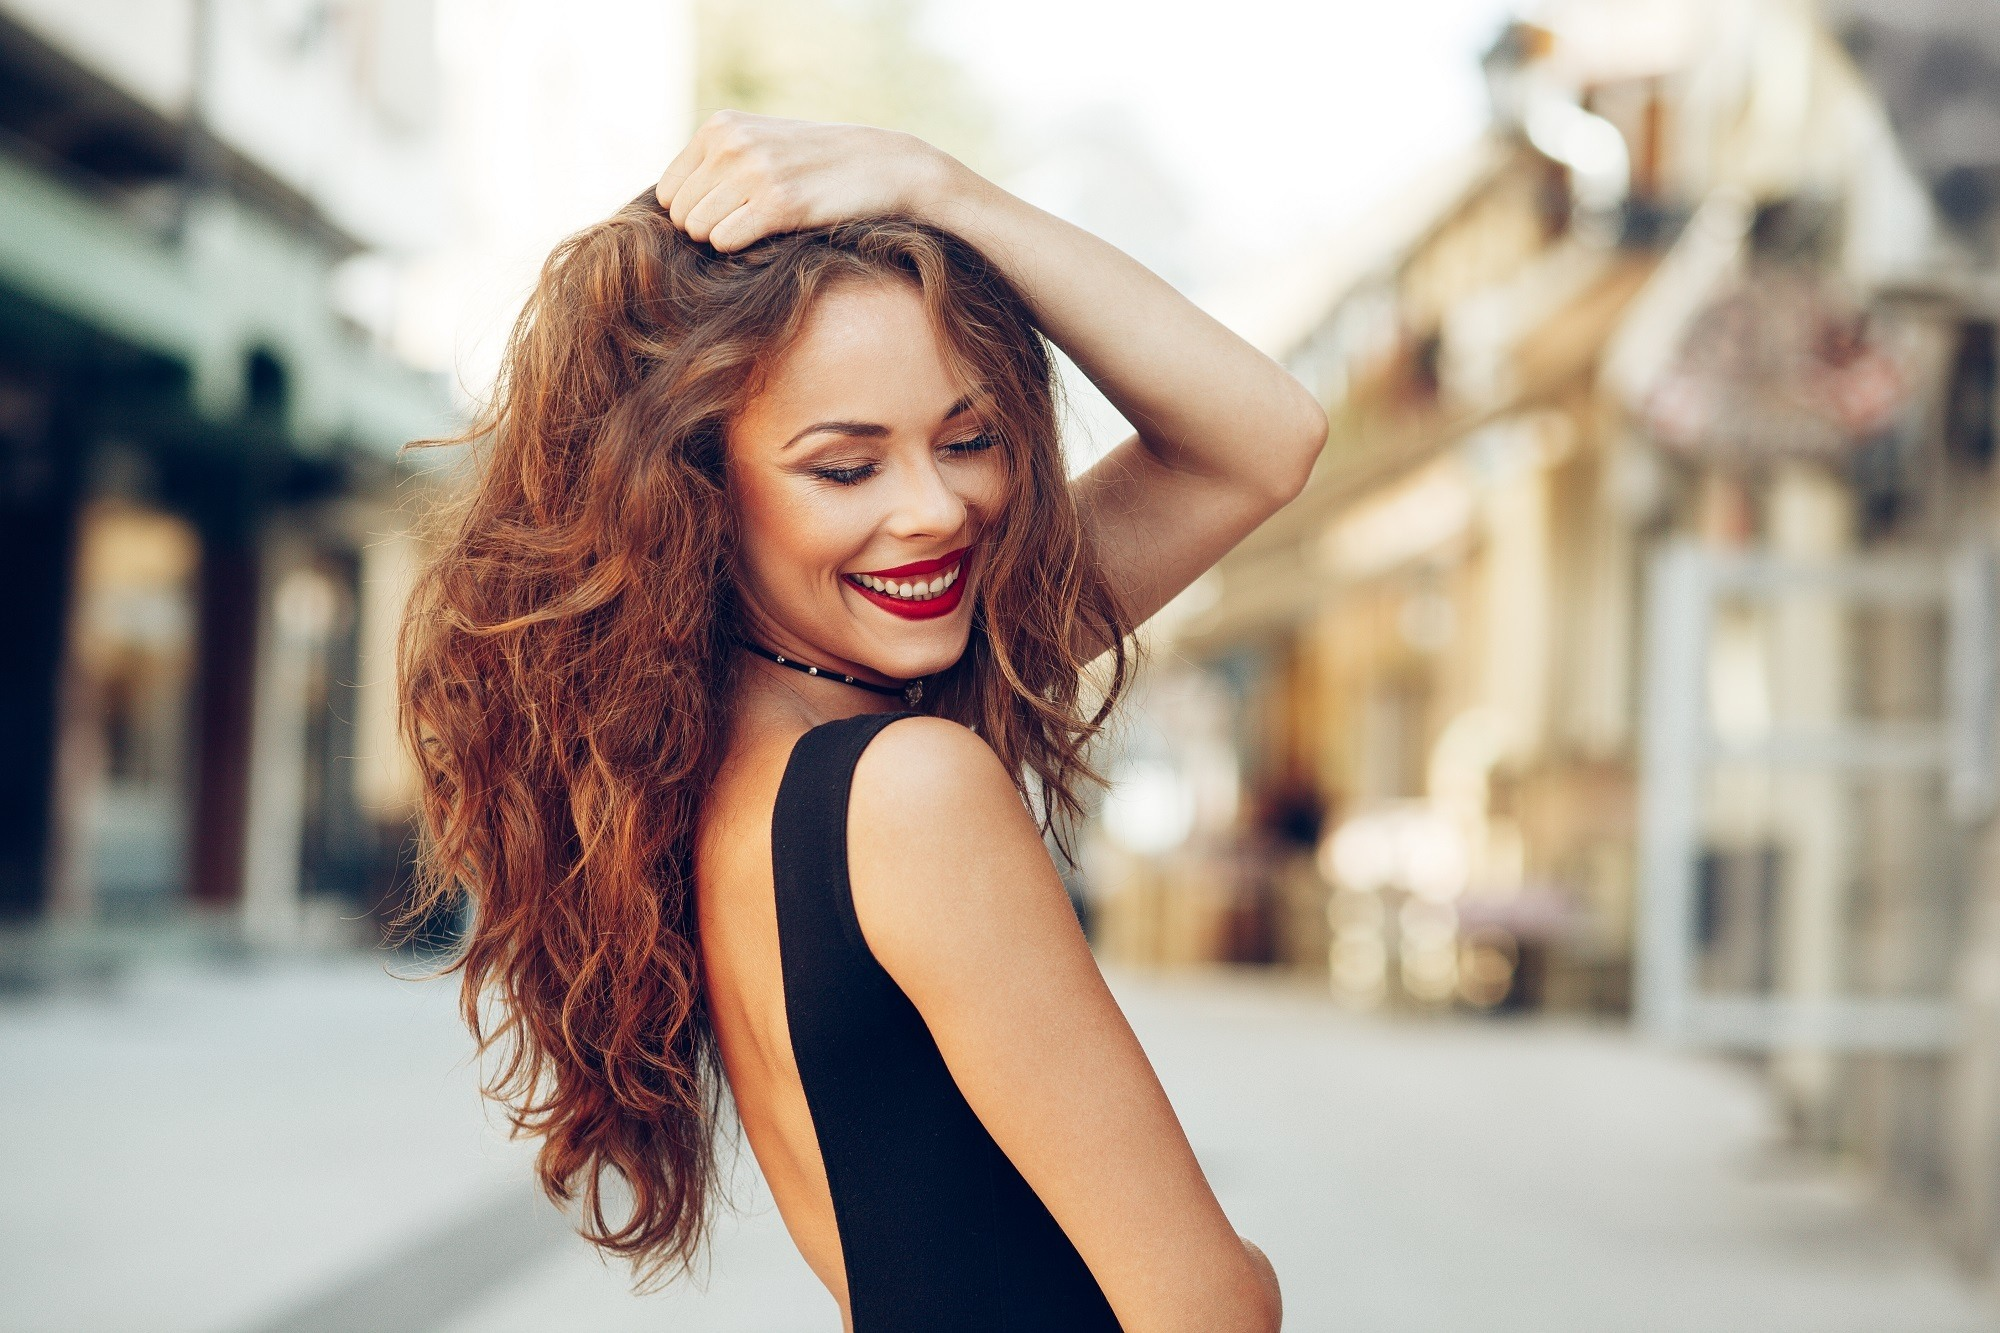 Curls for long hair: Woman with long brown curly hair